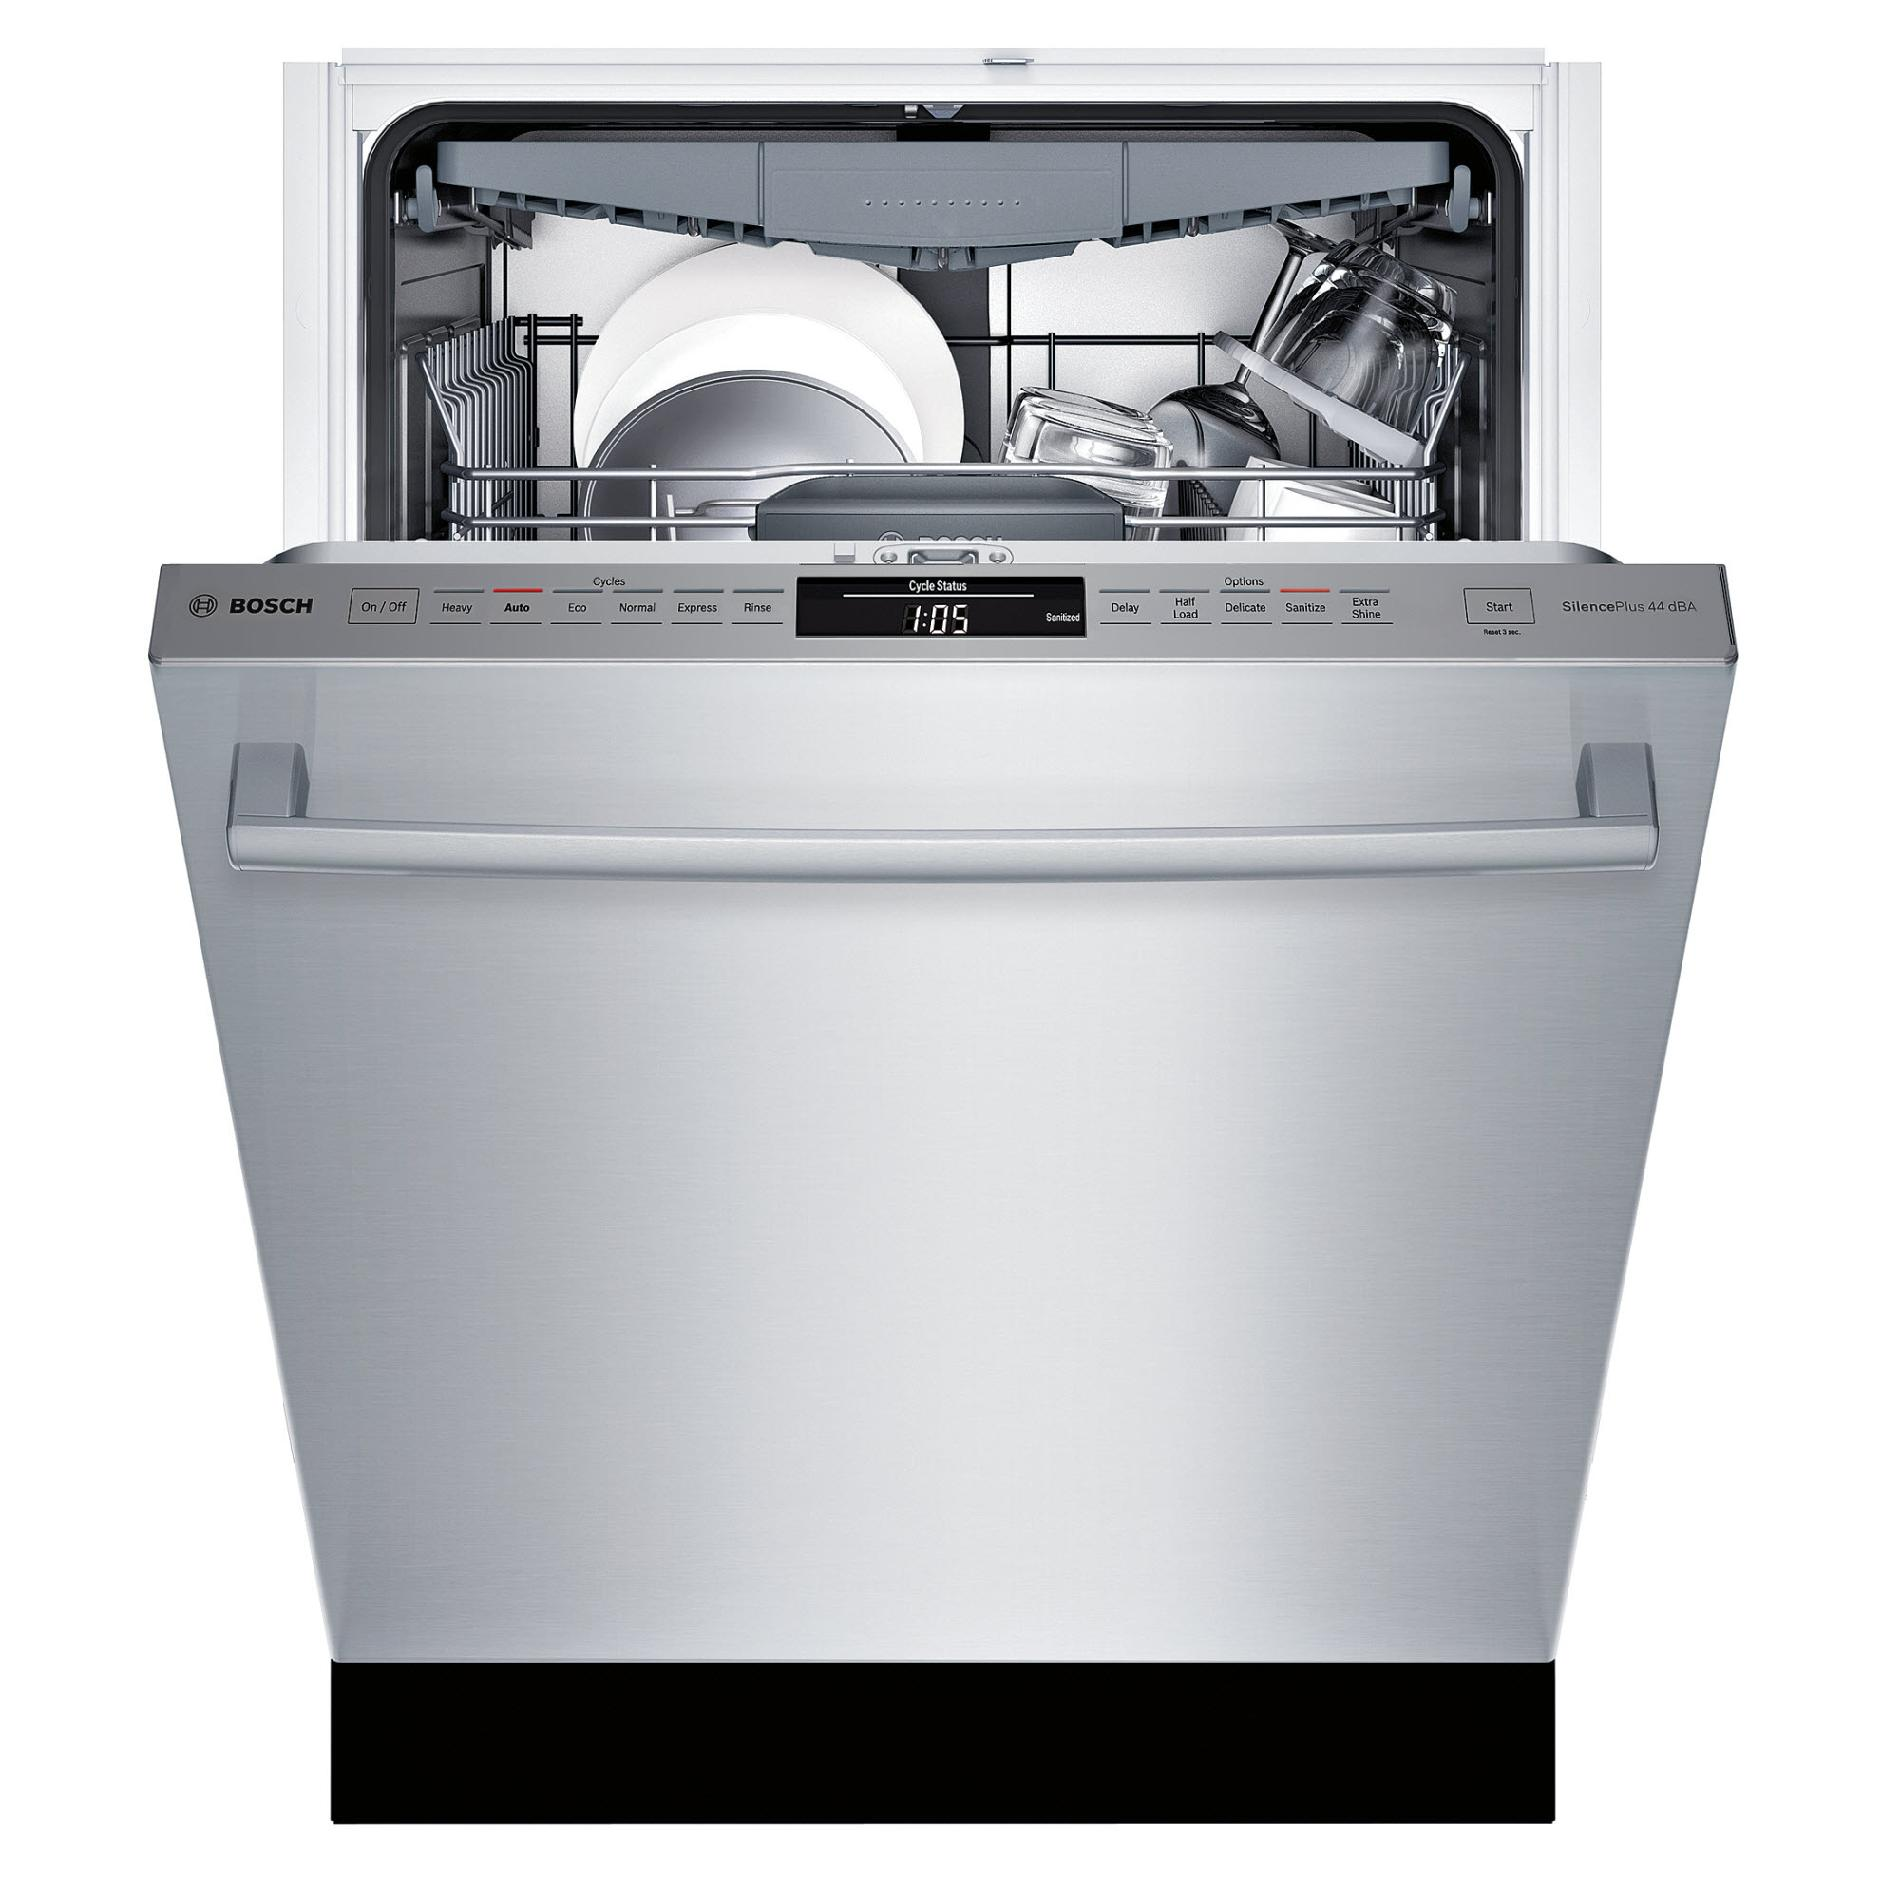 "Bosch SHX68T55UC 24"" 800 Series Built-In Dishwasher - Stainless Steel"